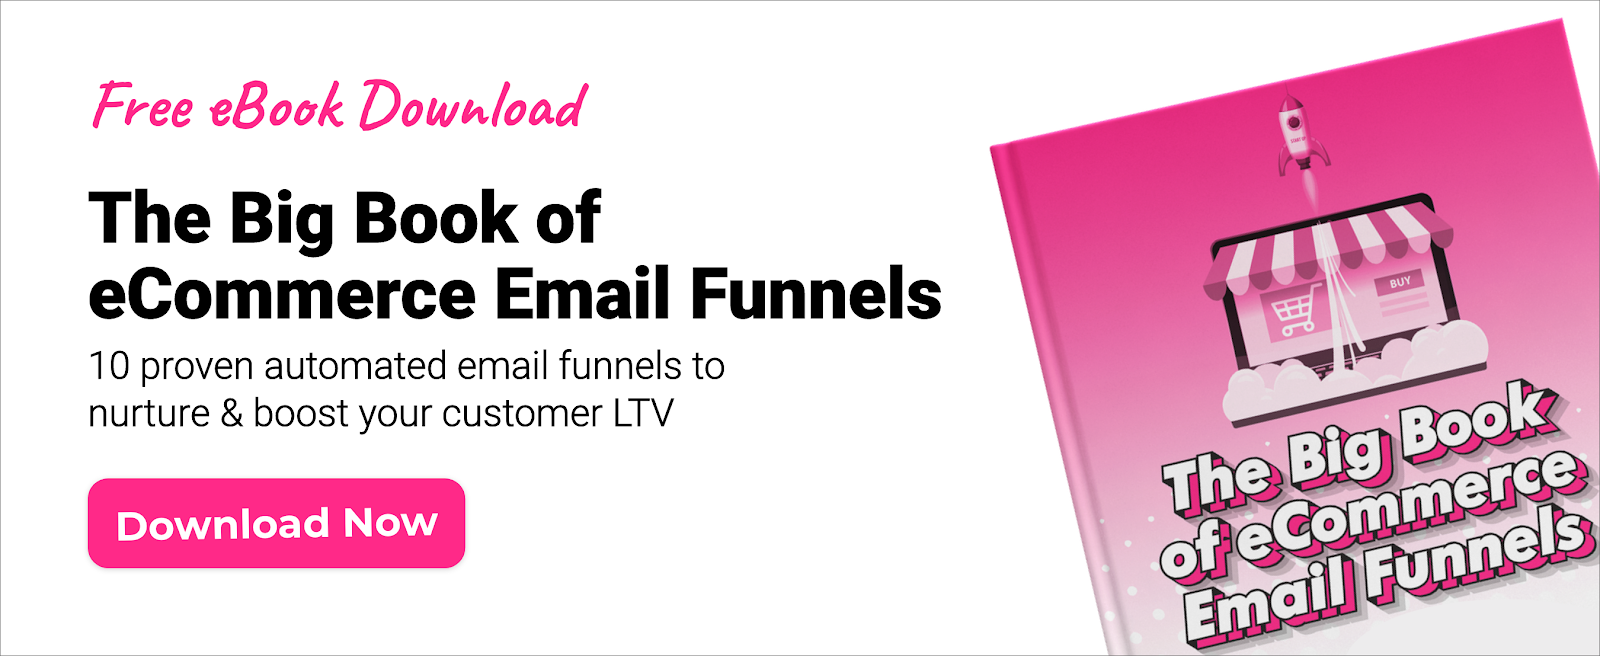 sendlane_autmation_funnels_ebook